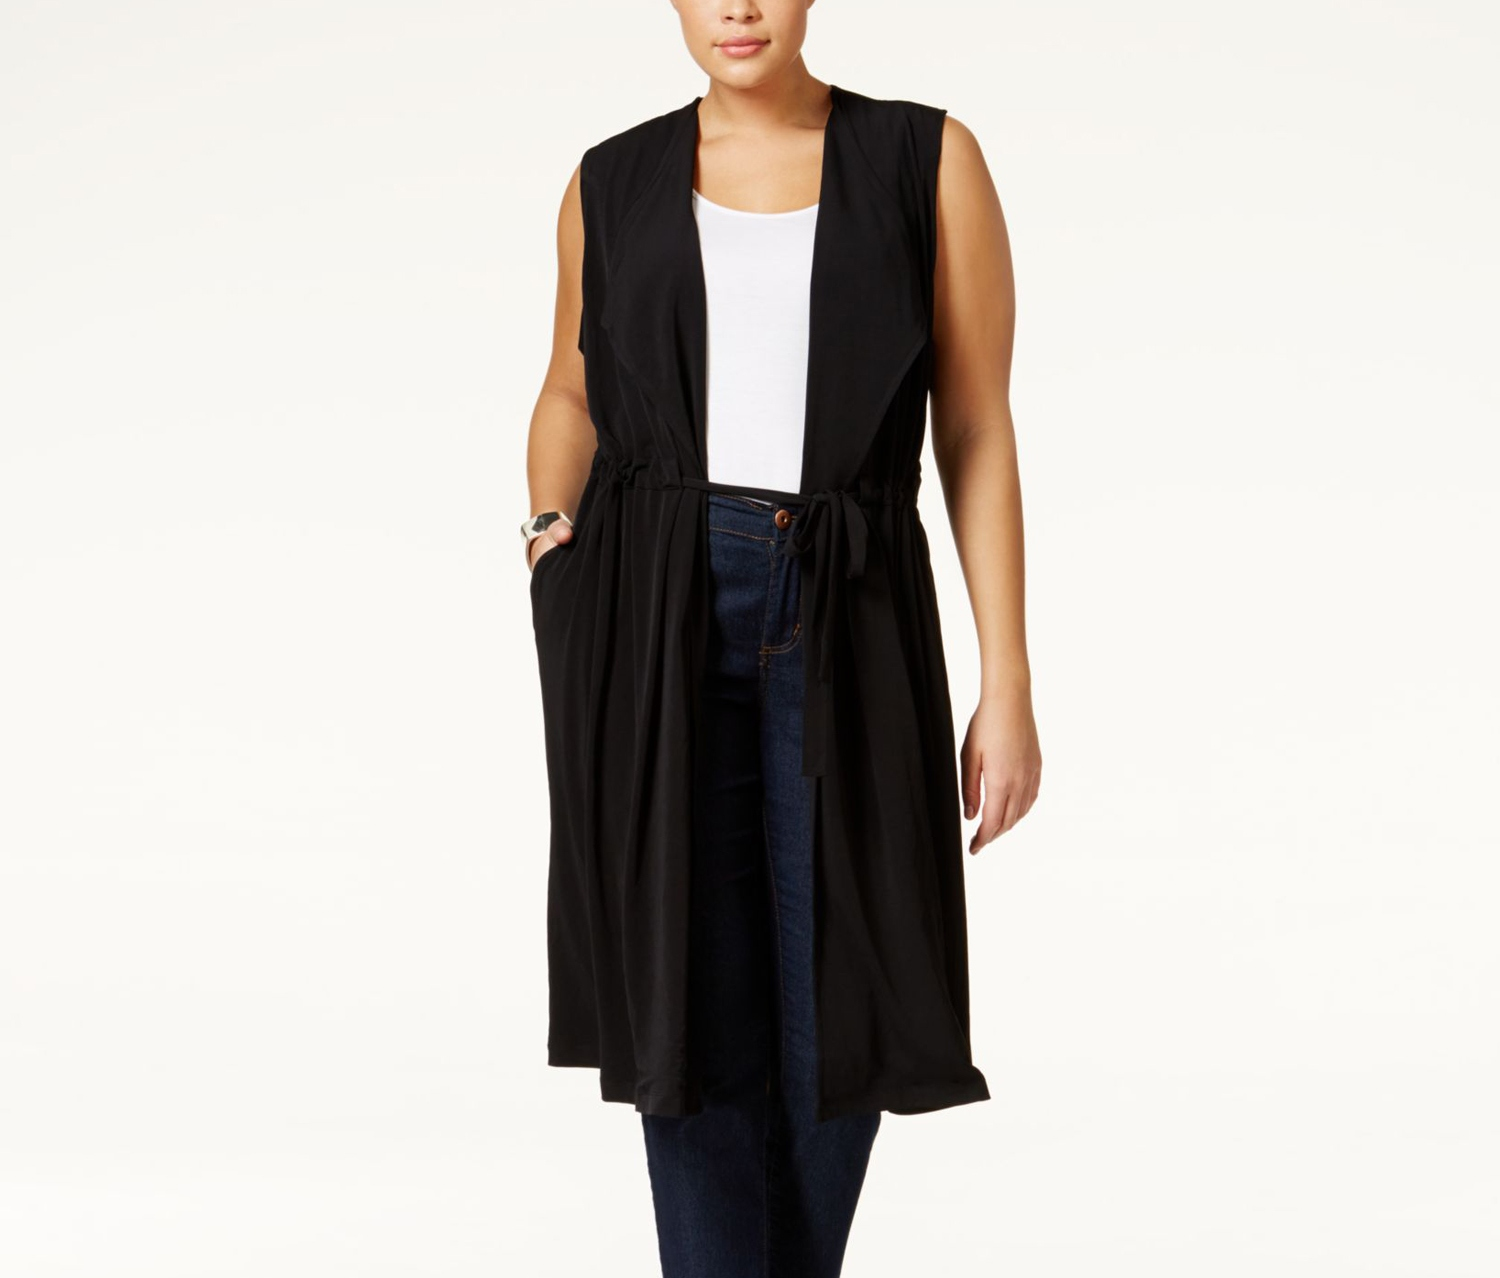 cb8793cf219e7f Shop Alfani Alfani Plus Size Tied-Waist Long Vest, Deep Black for ...